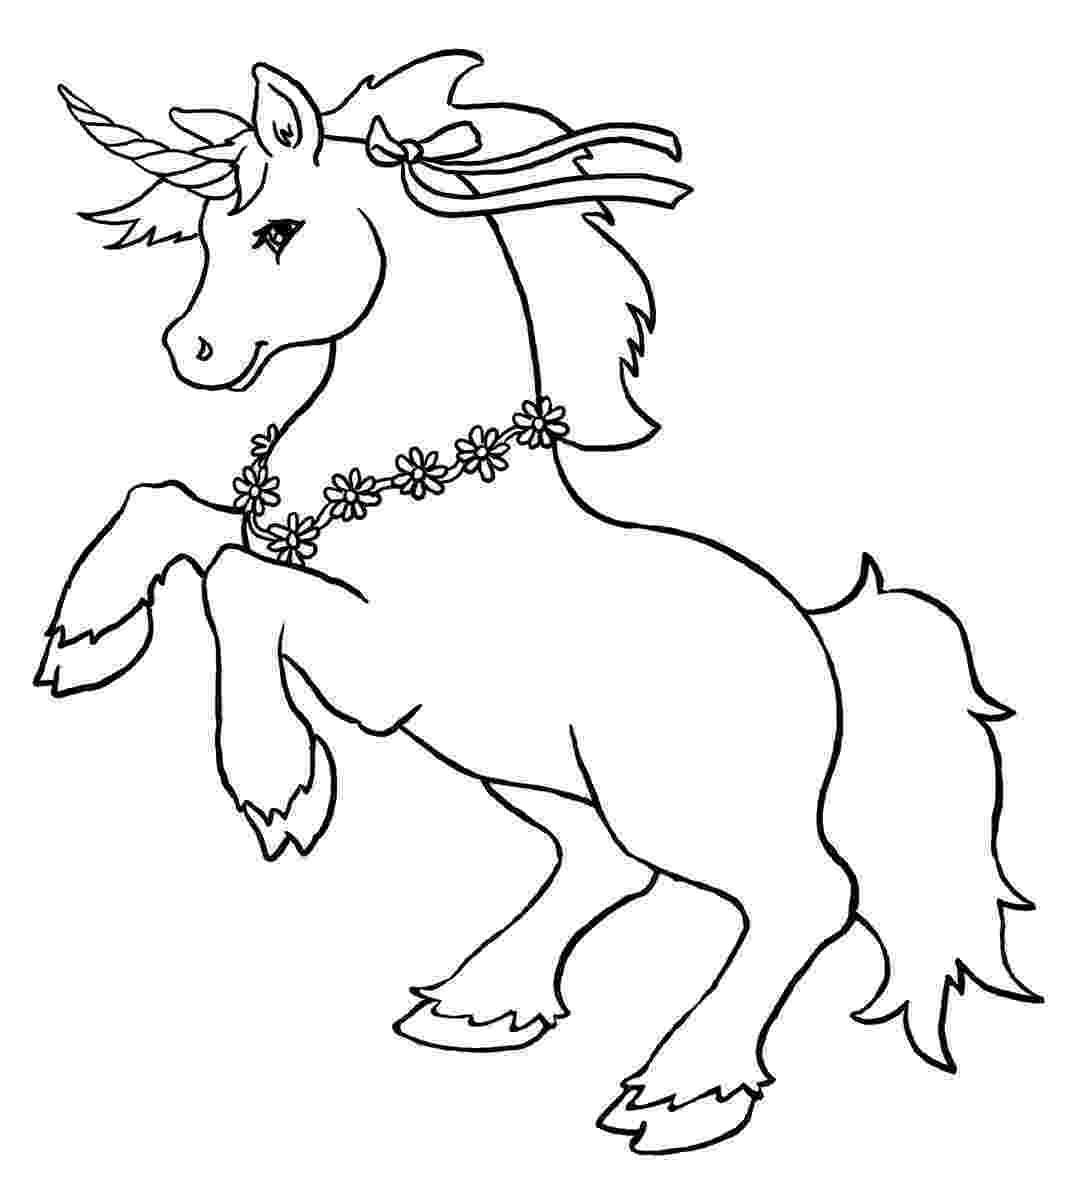 unicorn colouring free printable unicorn coloring pages for kids colouring unicorn